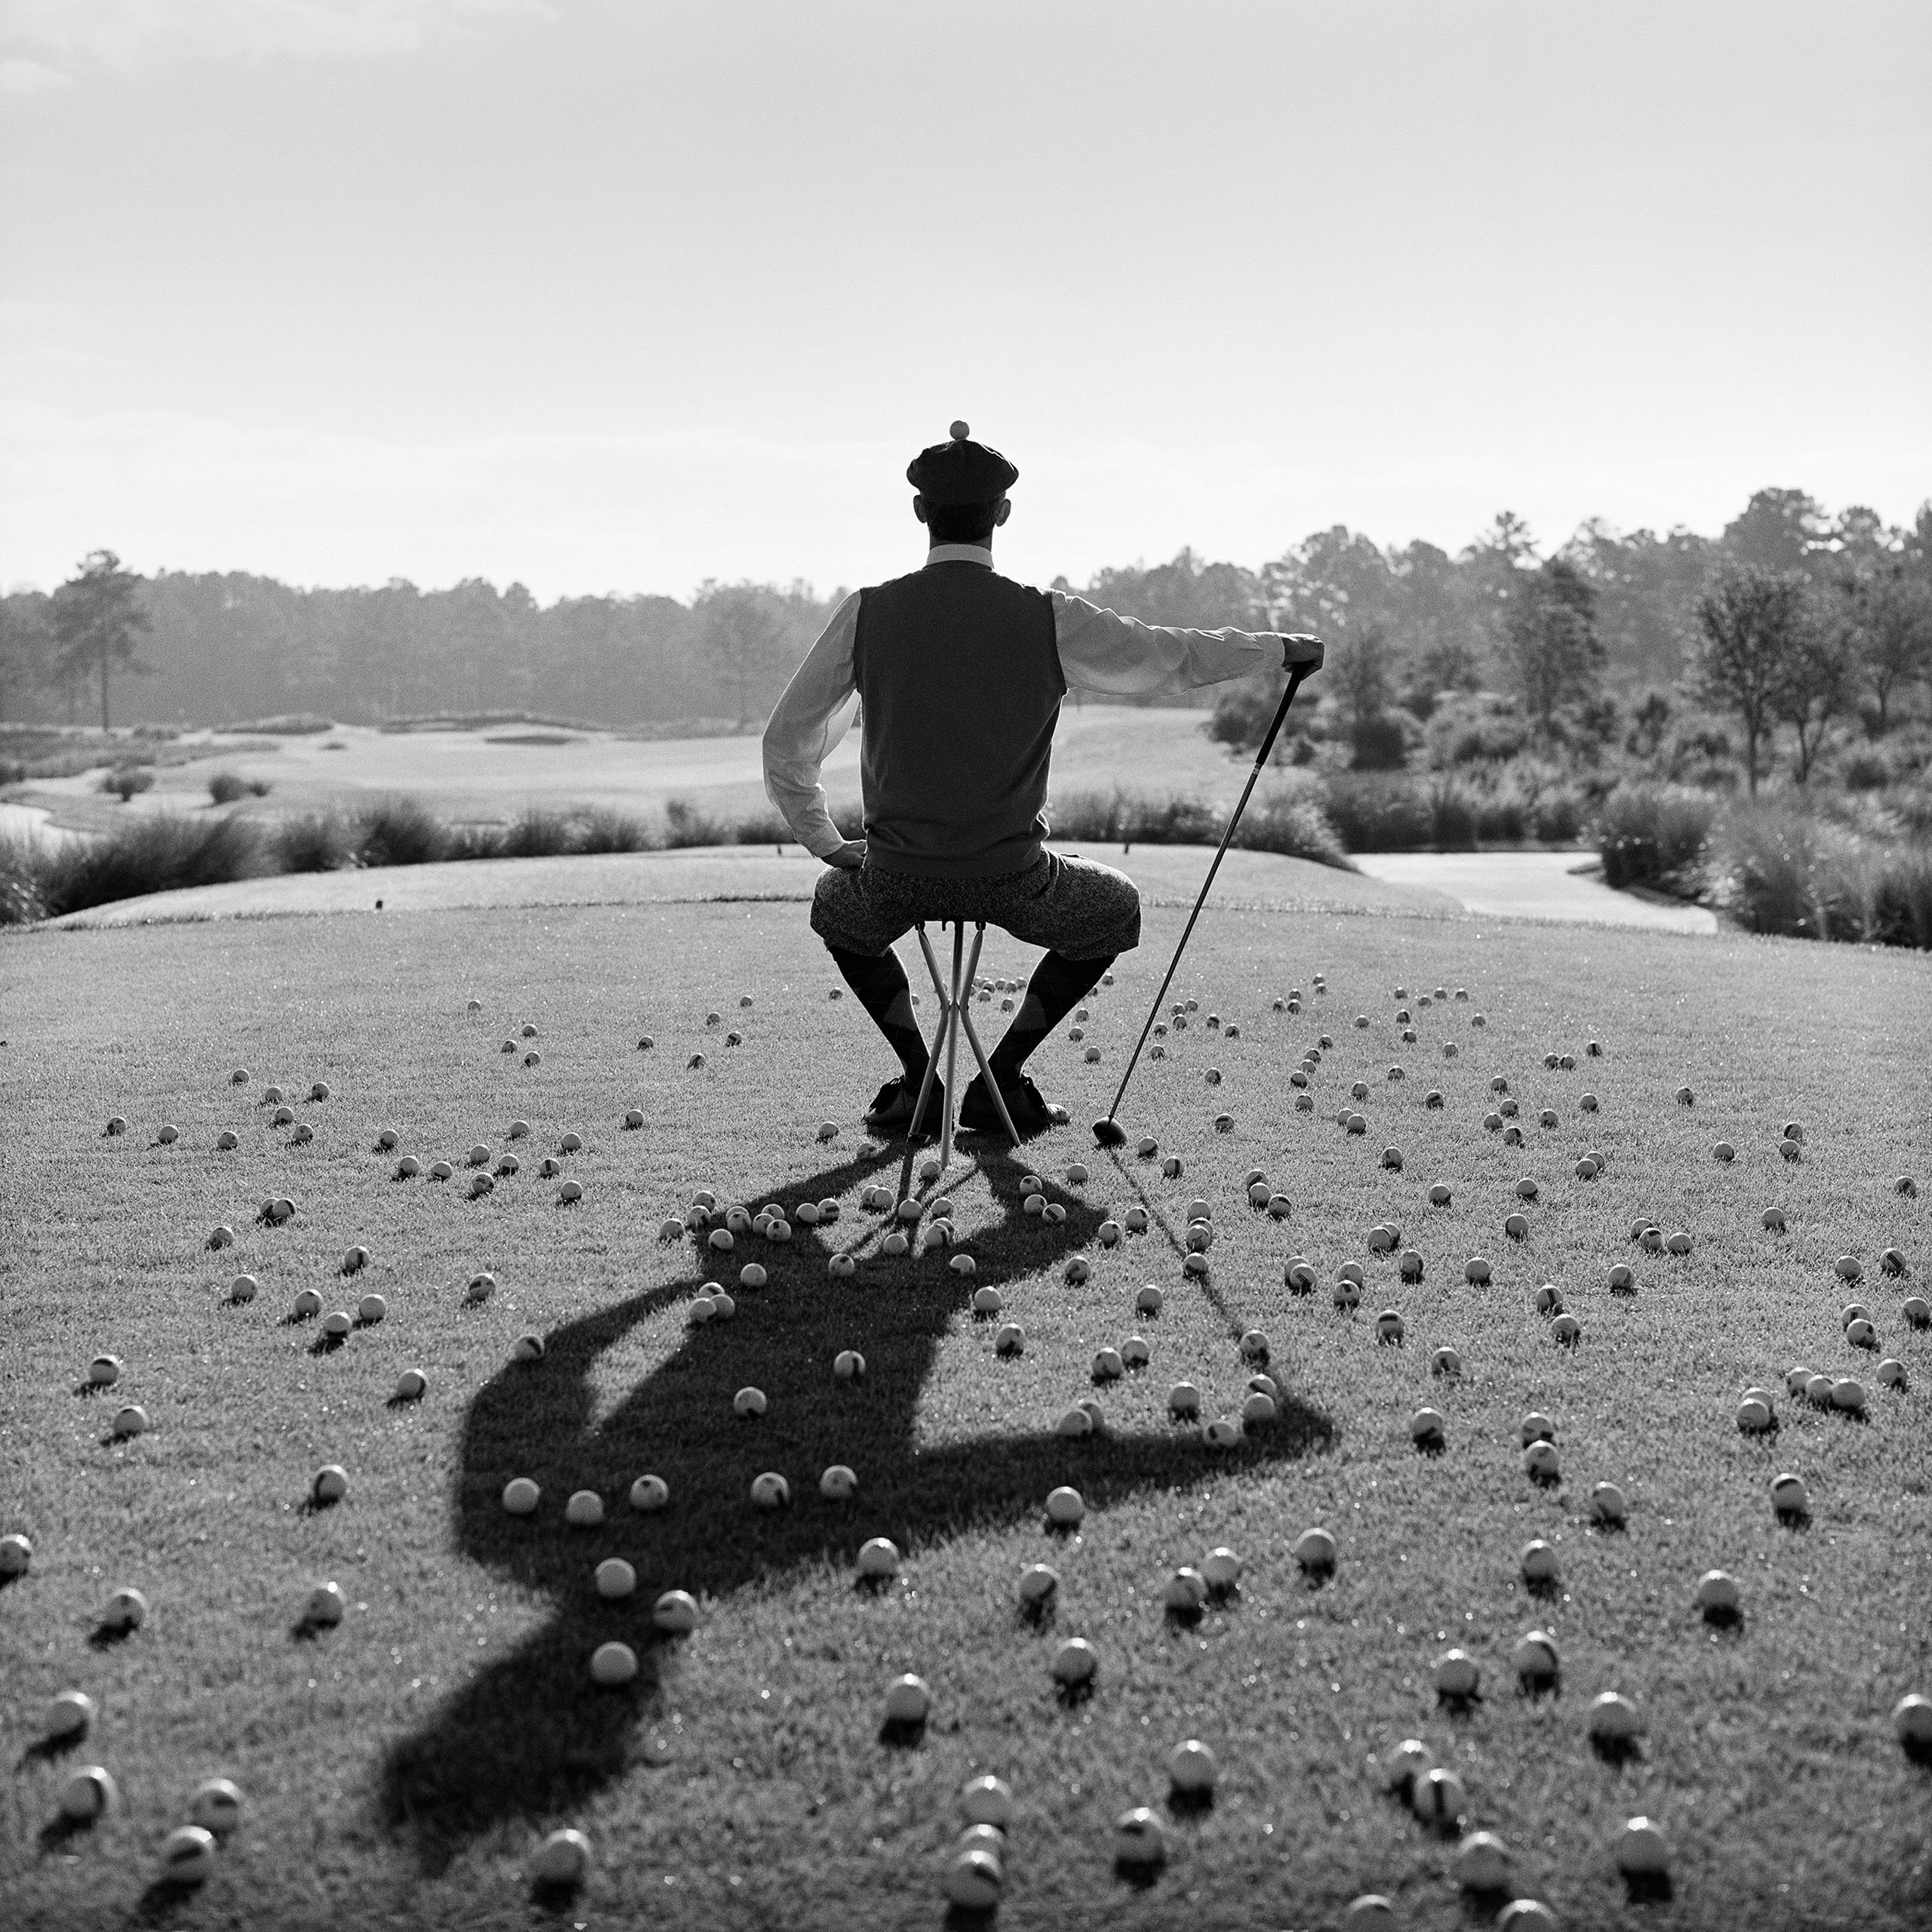 Seated with golf balls, St. Augustine, 1998